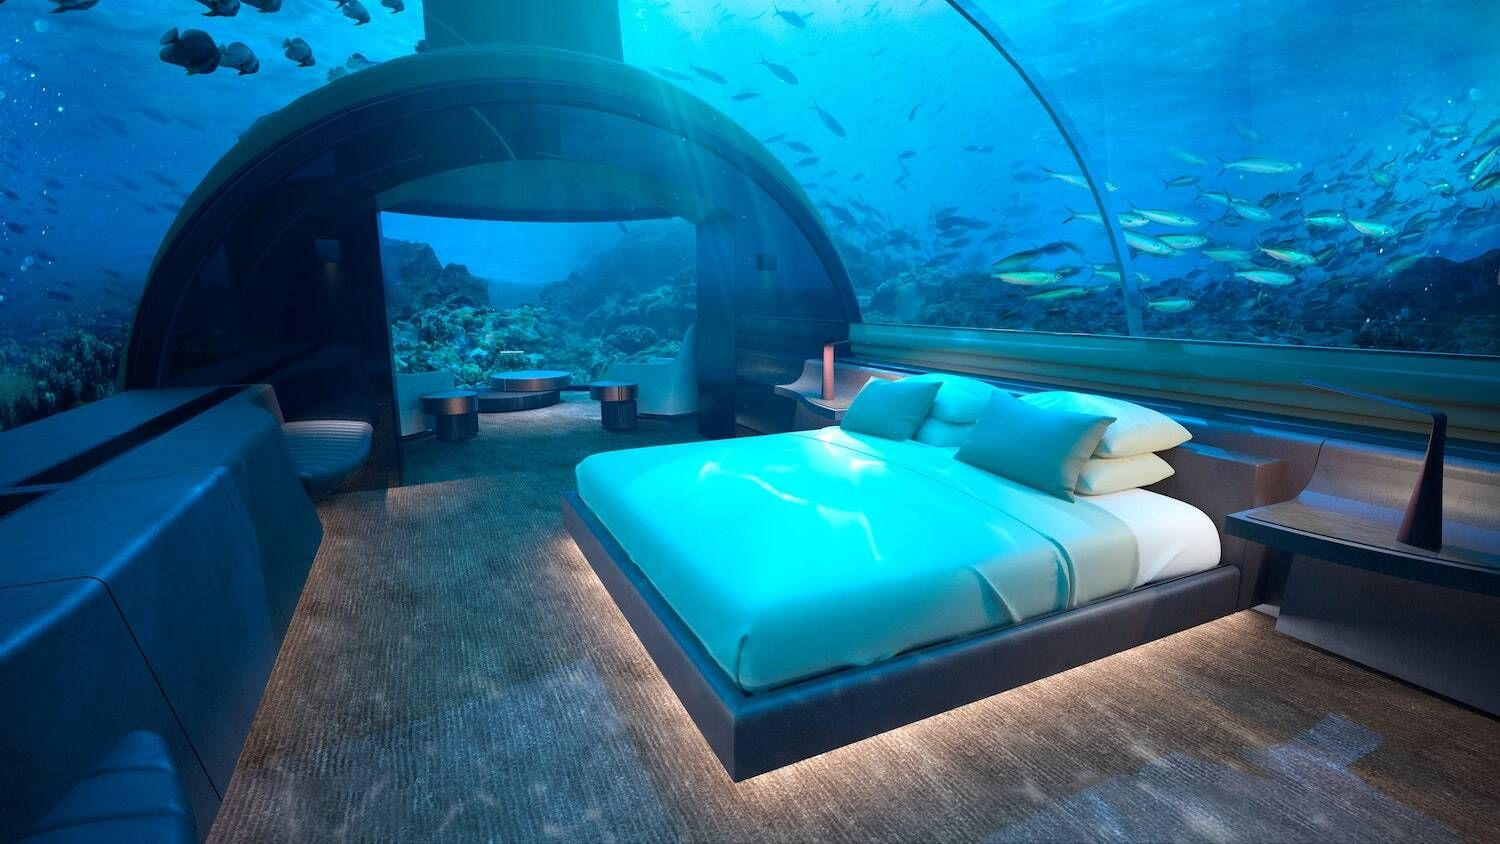 This underwater villa in The Maldives lets you sleep with sharks